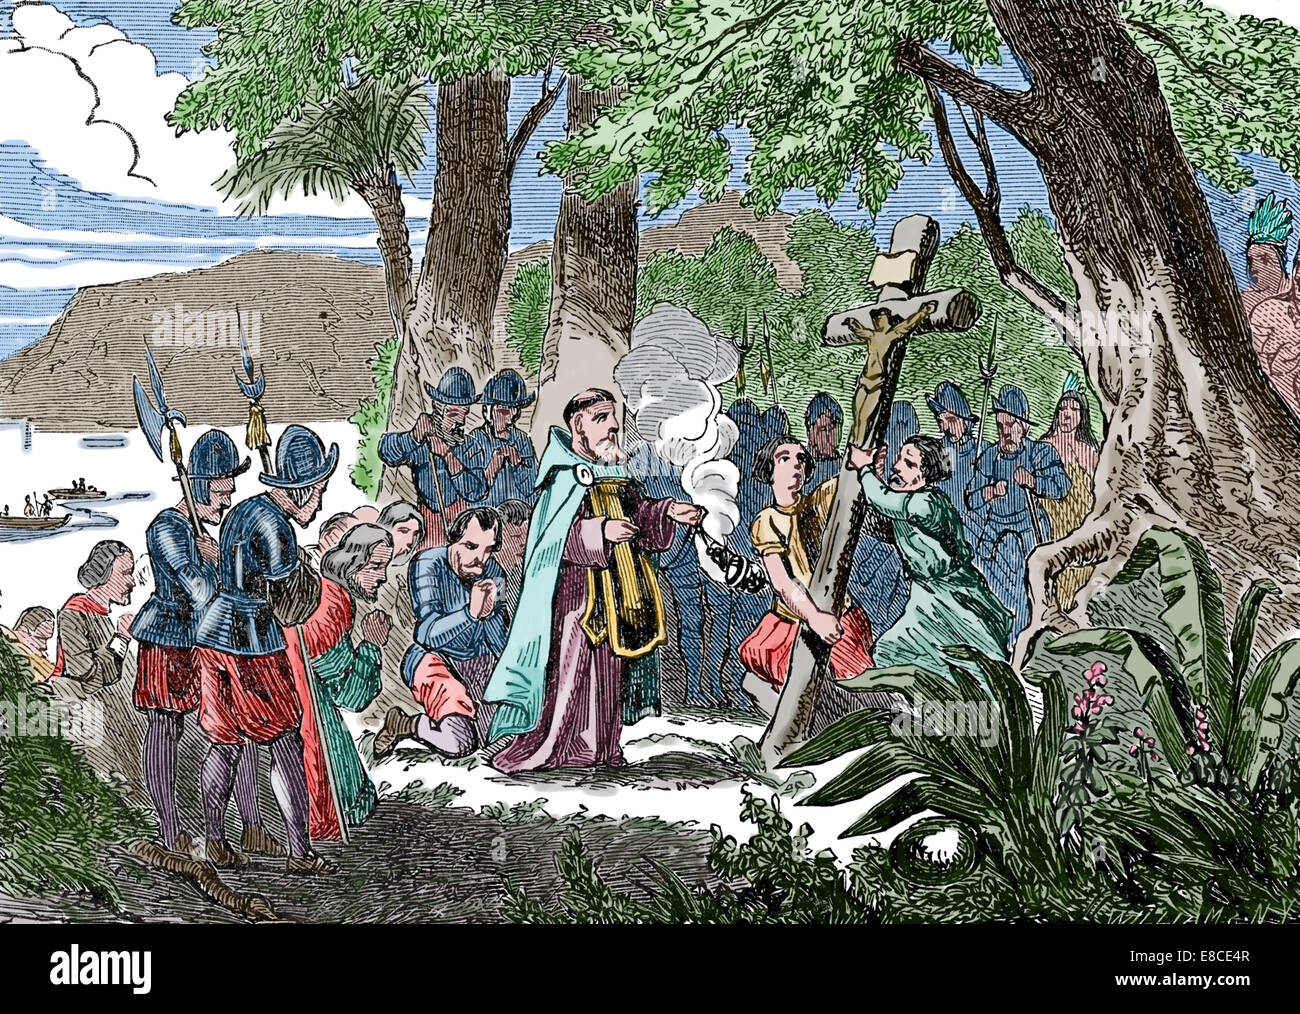 Discovery of America. The raising of the Christian cross following the discovery of the New World. 16th century. - Stock Image